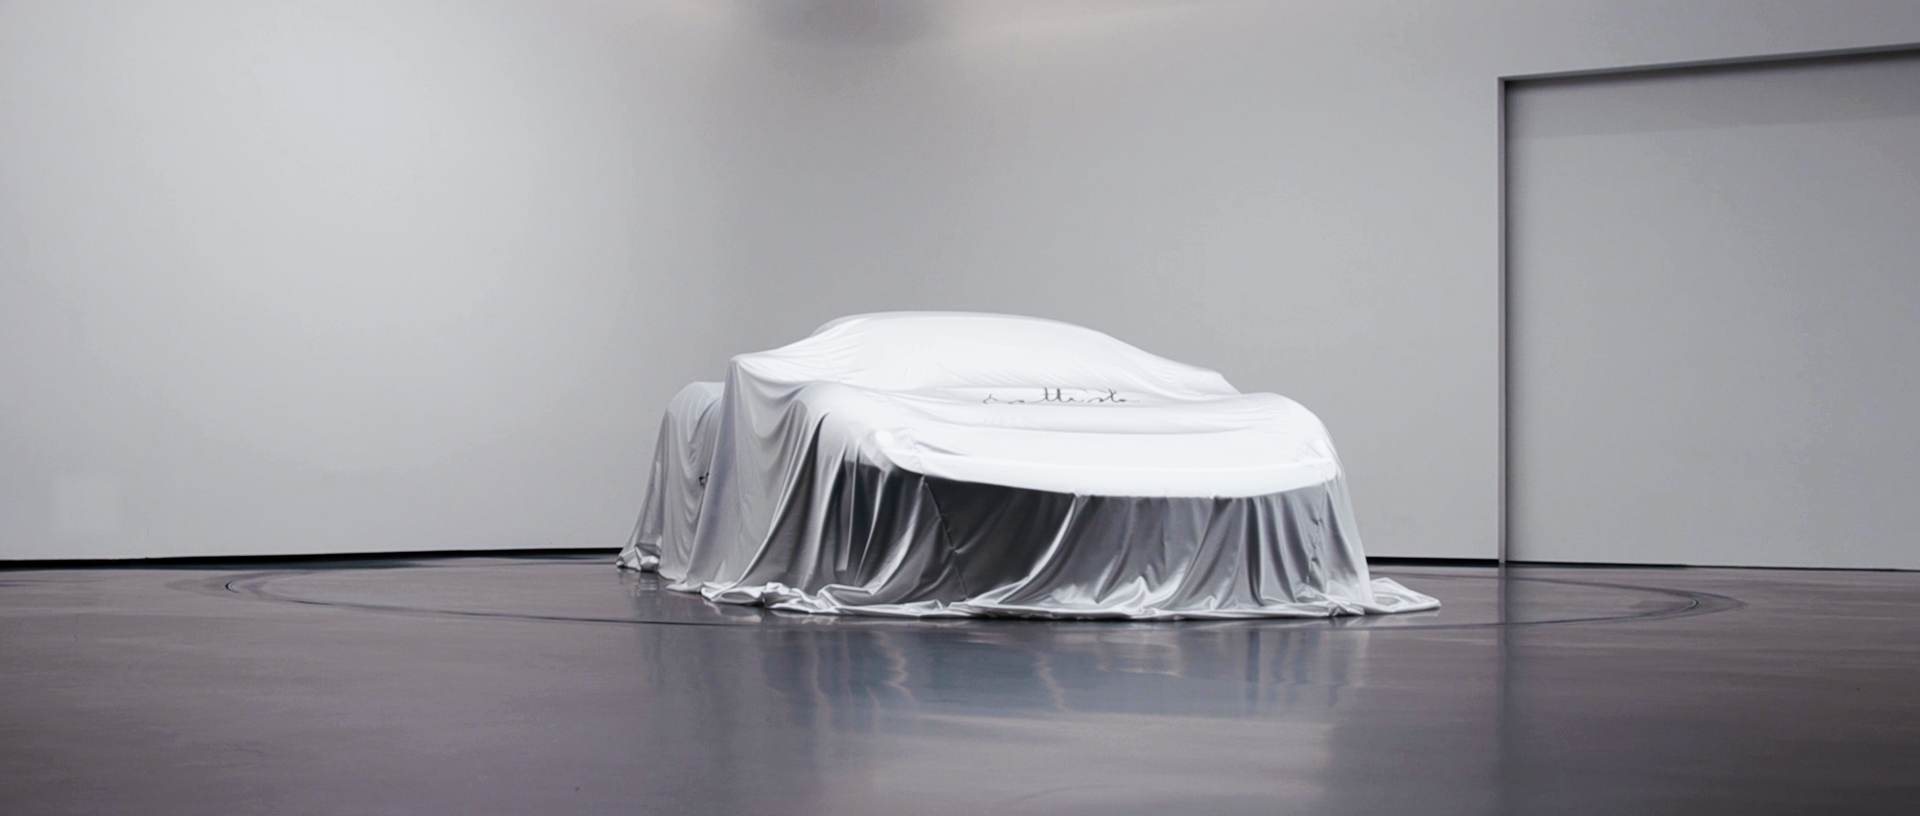 Pininfarina Battista Hypercar Covered